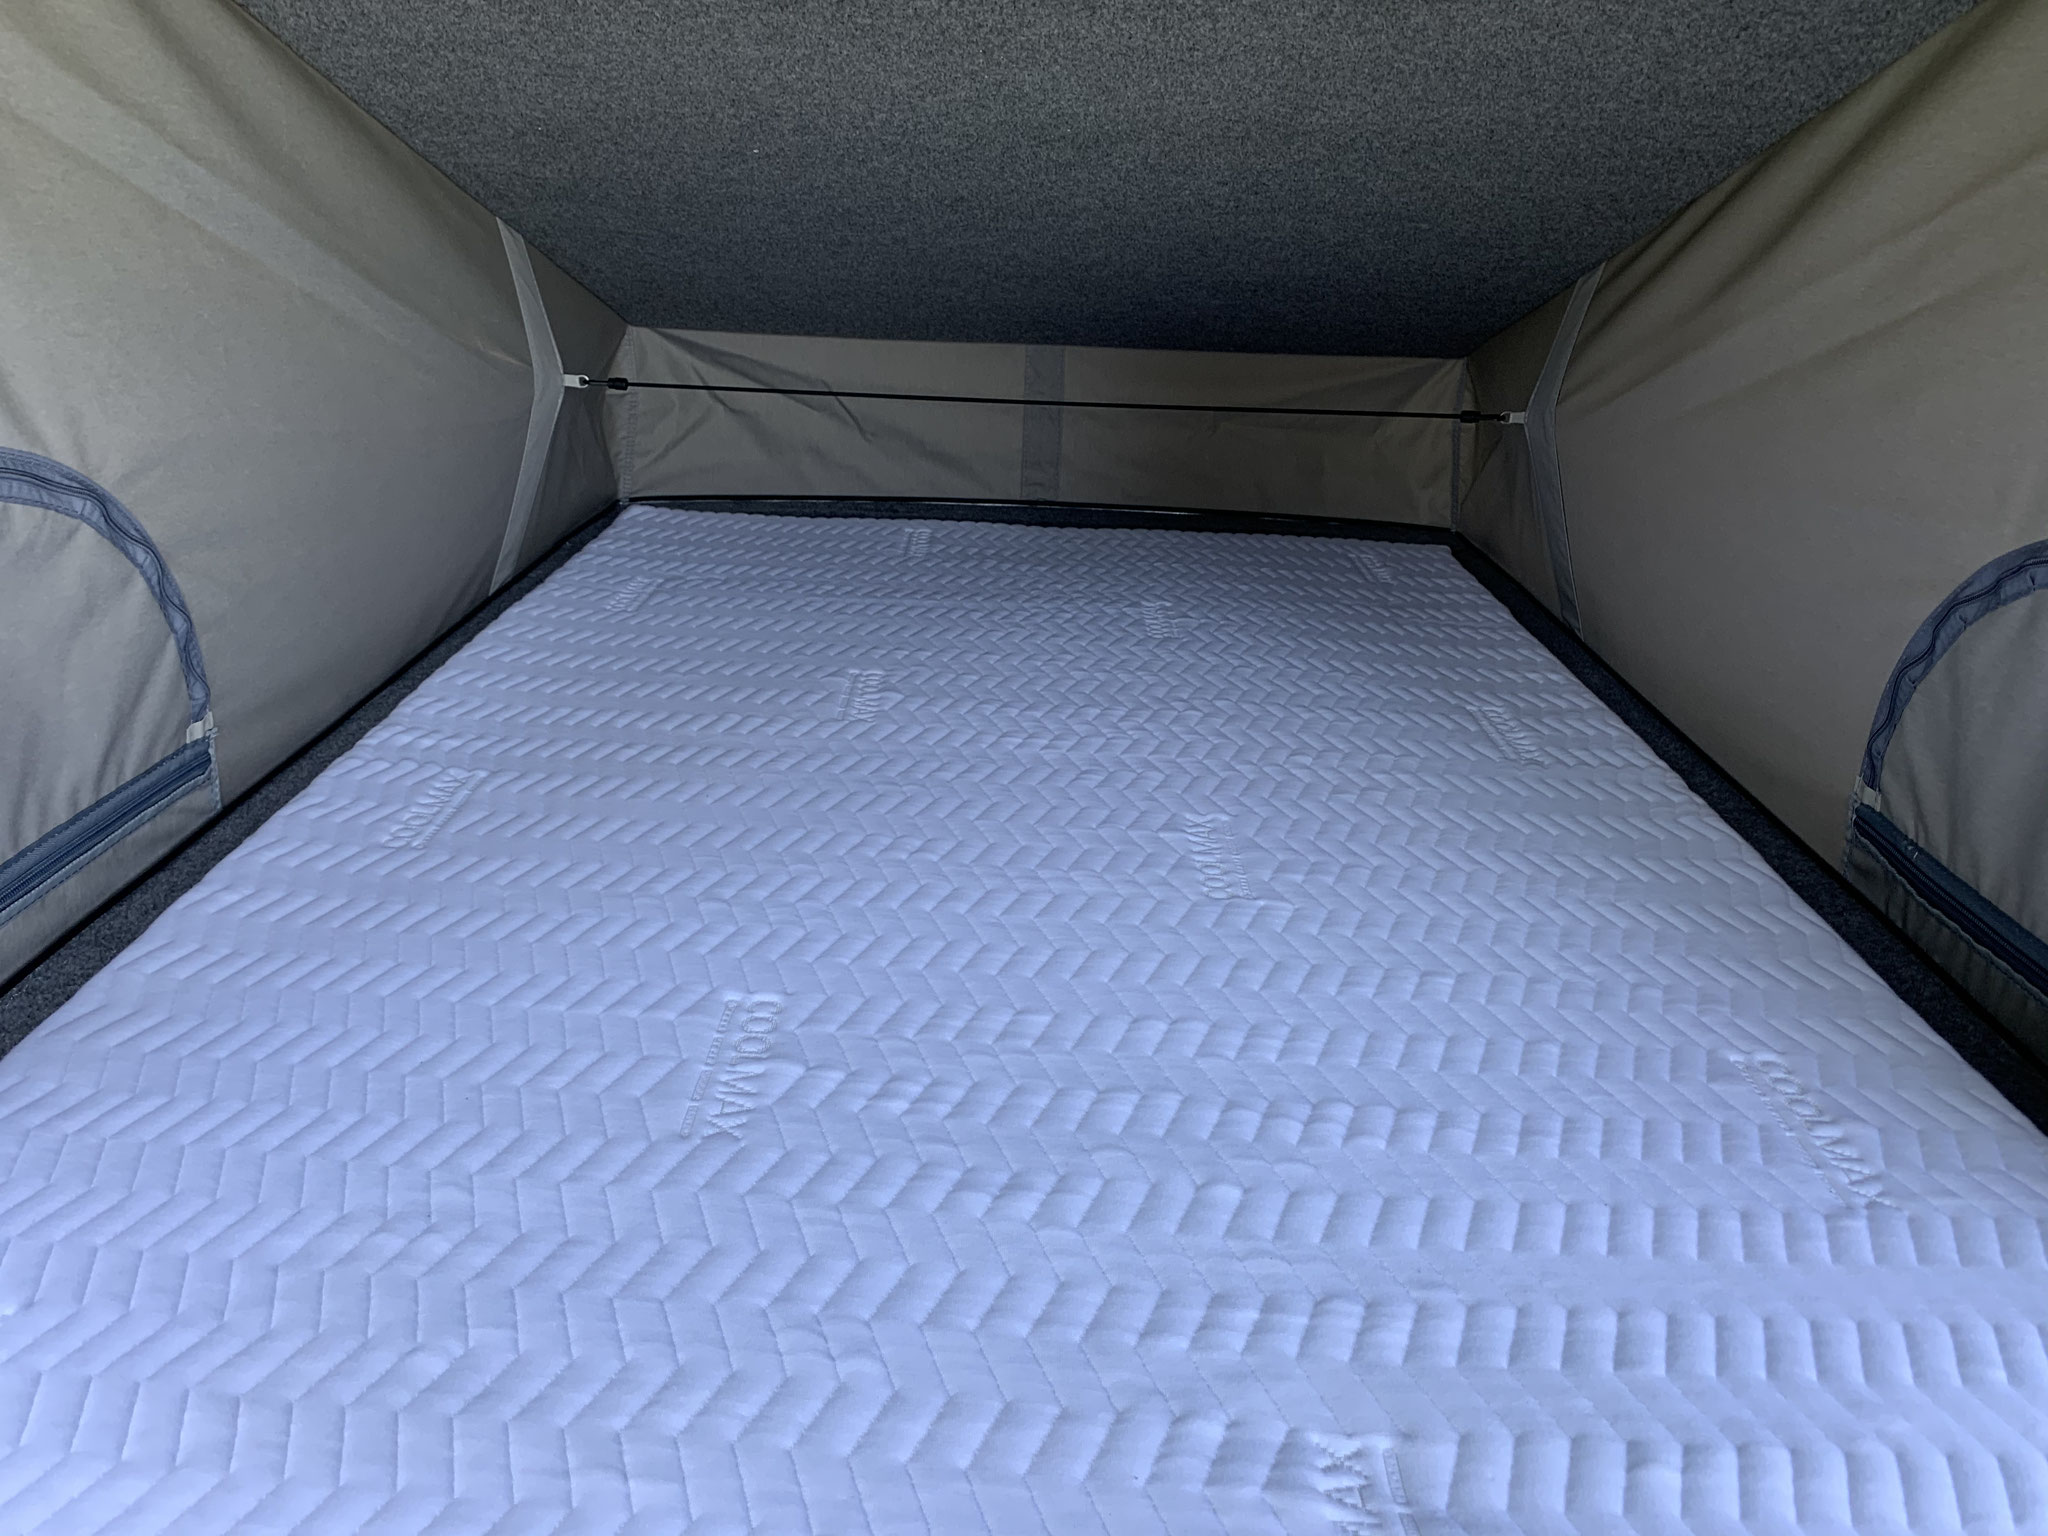 Roof bed with breathable quilted mattress